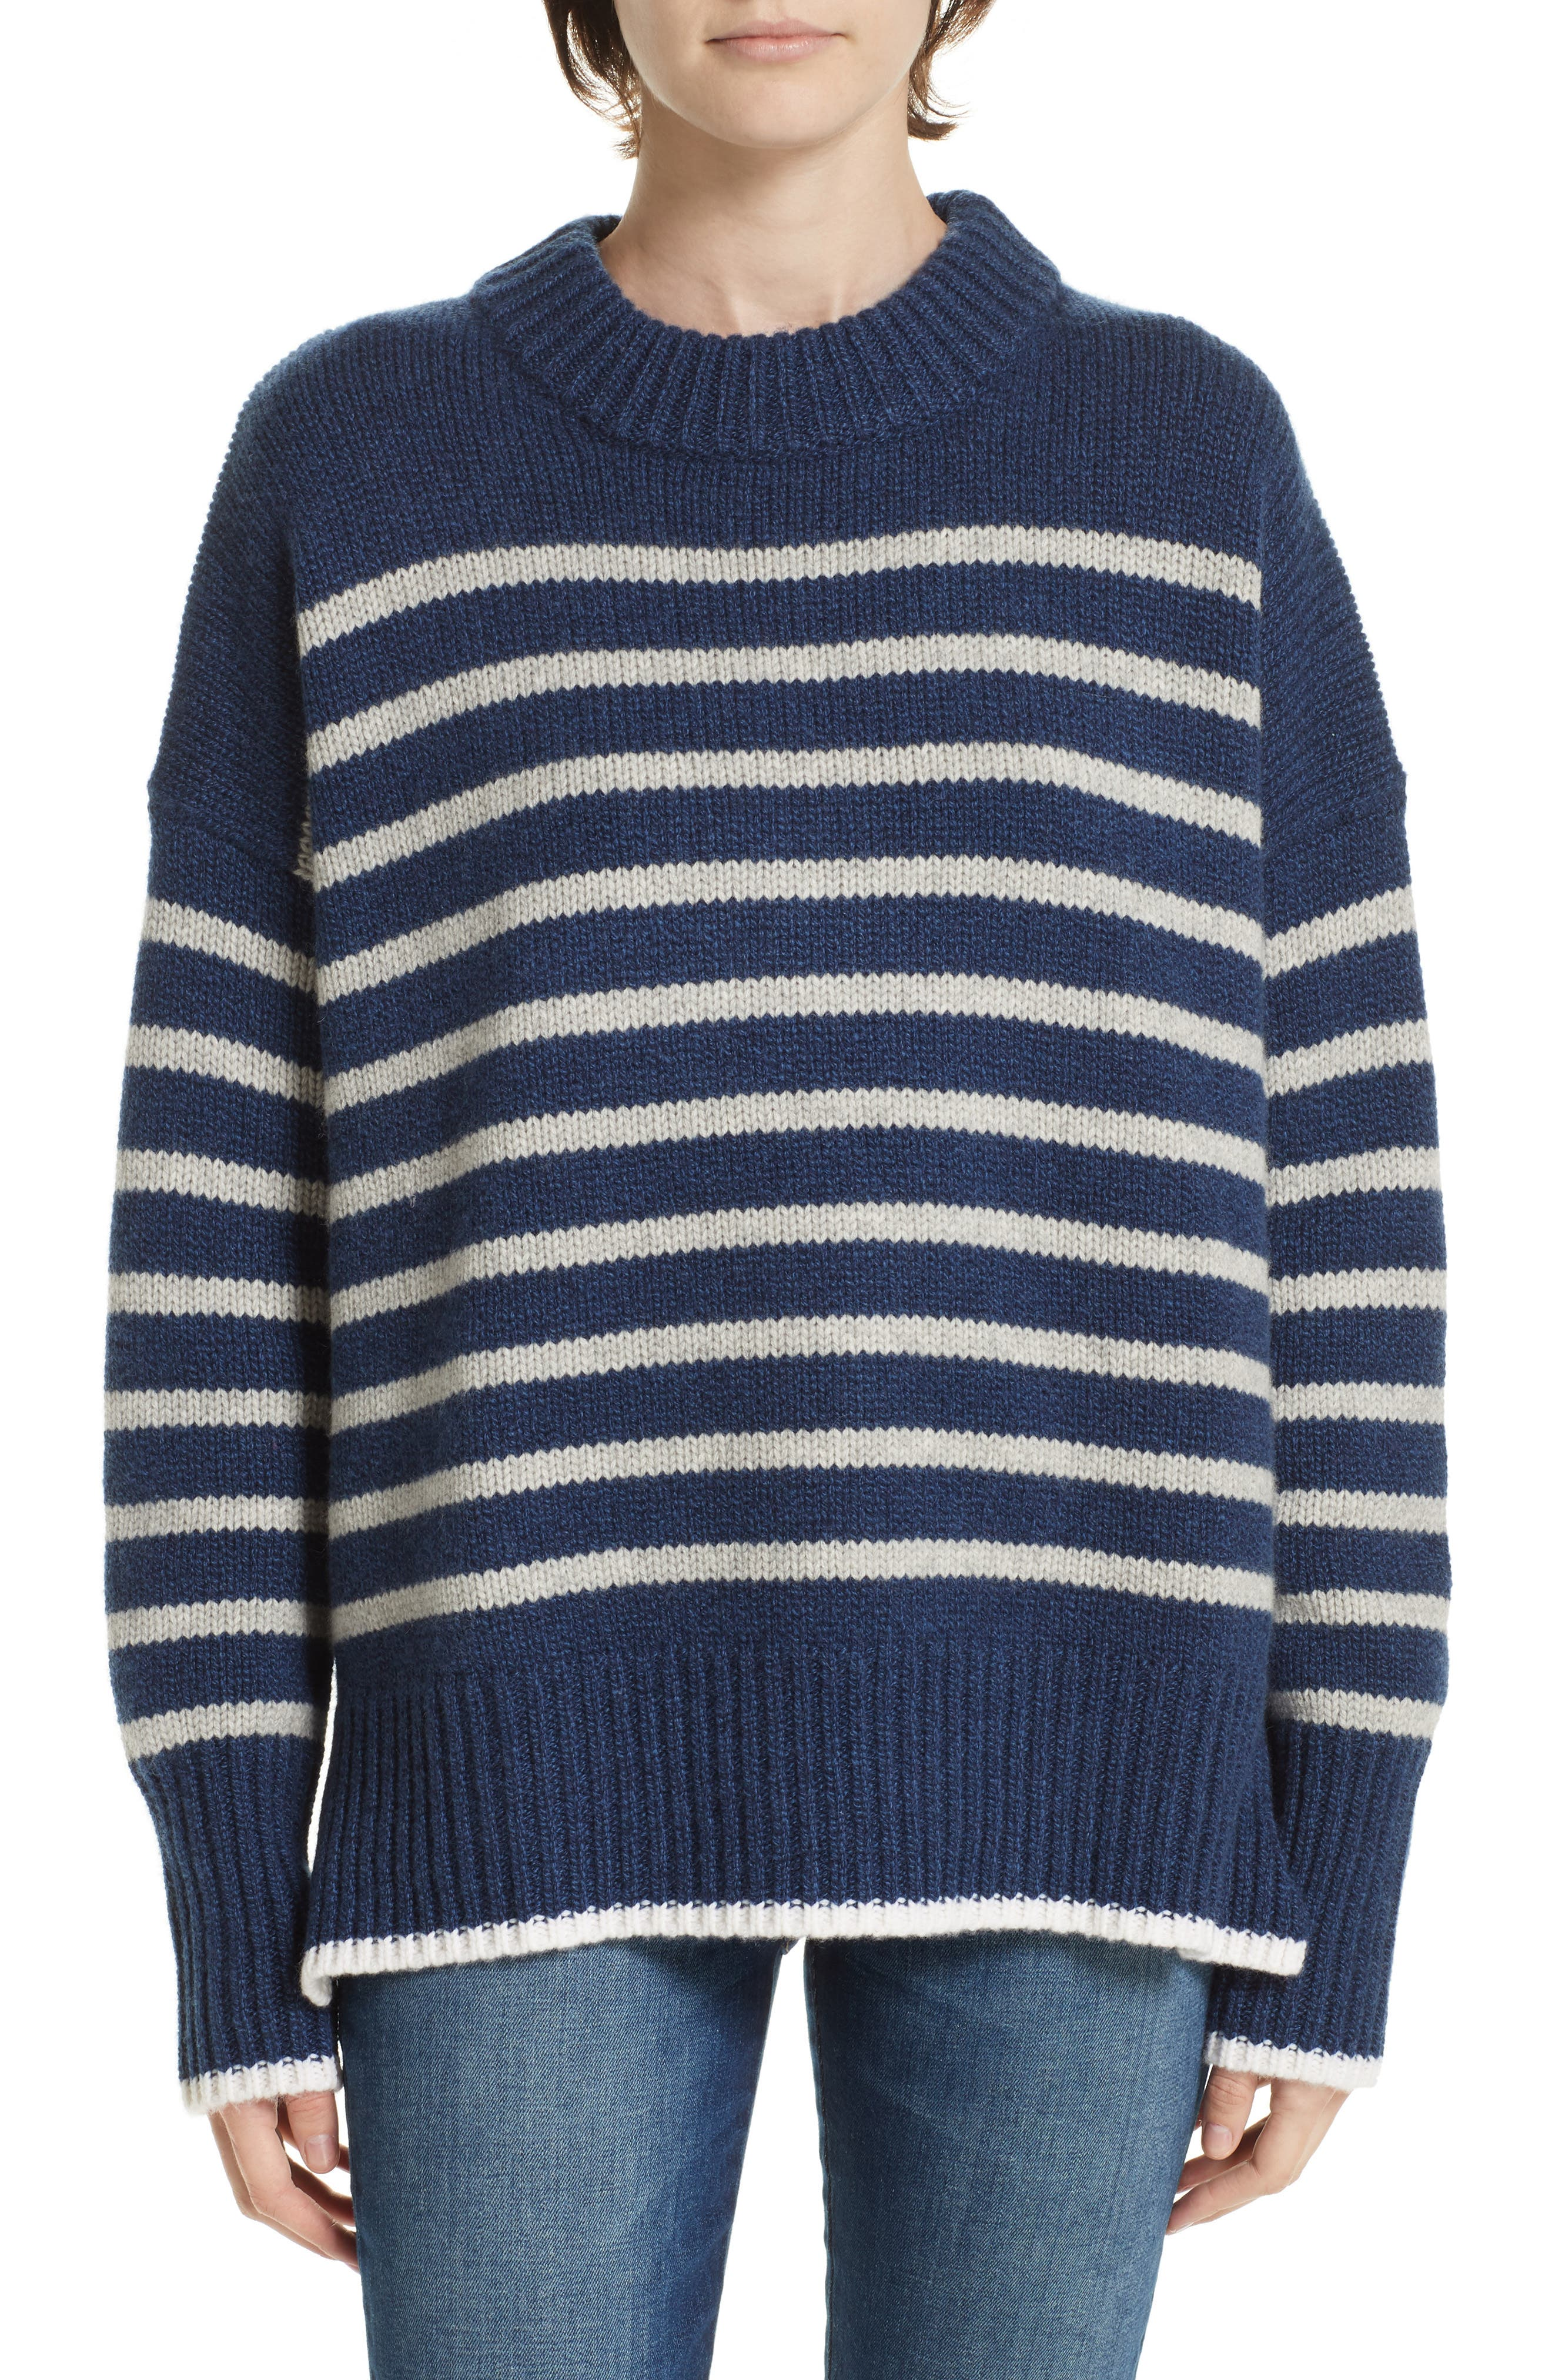 Marin Stripe Cashmere & Wool Sweater,                         Main,                         color, BLUE MARLE/ GREY MARLE/ CREAM